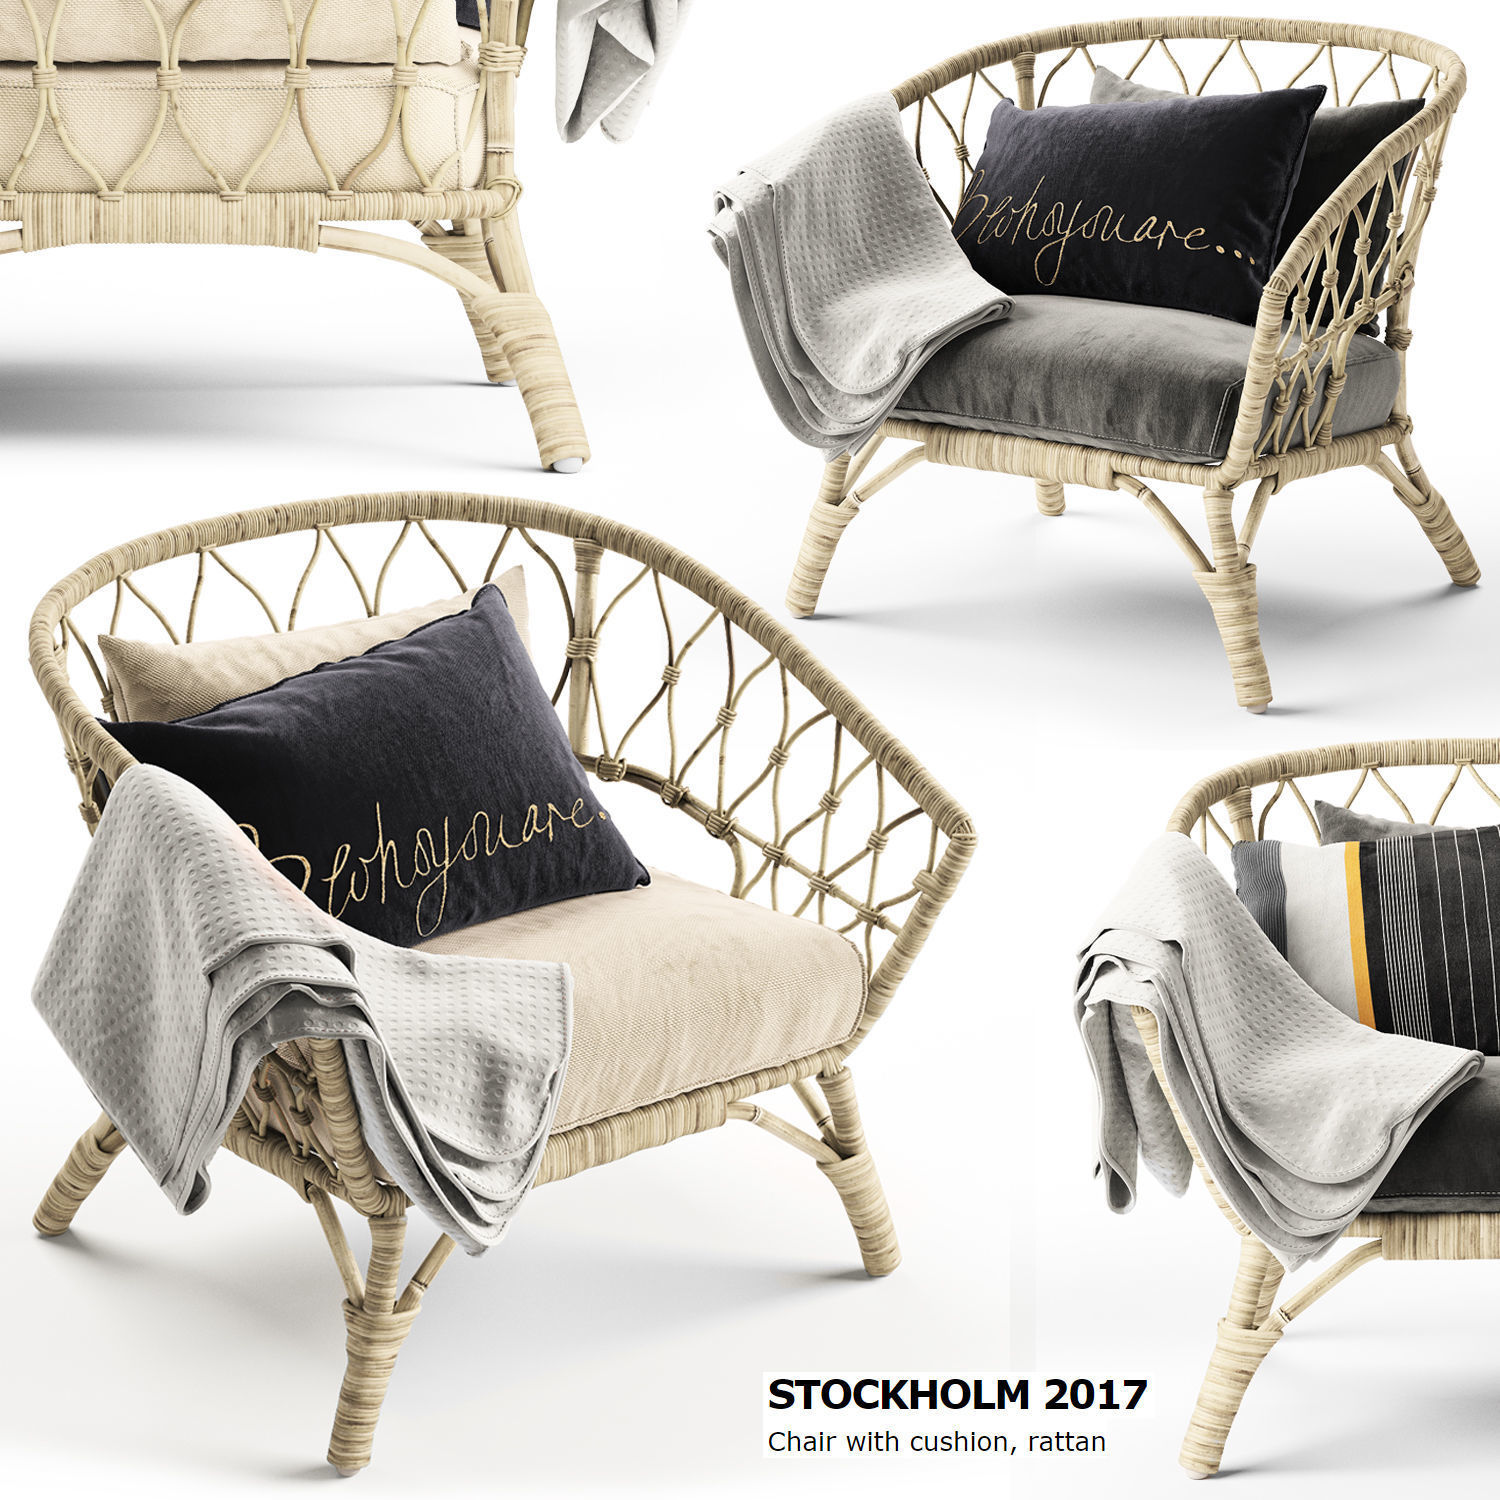 Rattan Ikea Chair Stockholm 2017 Ikea 3d Model